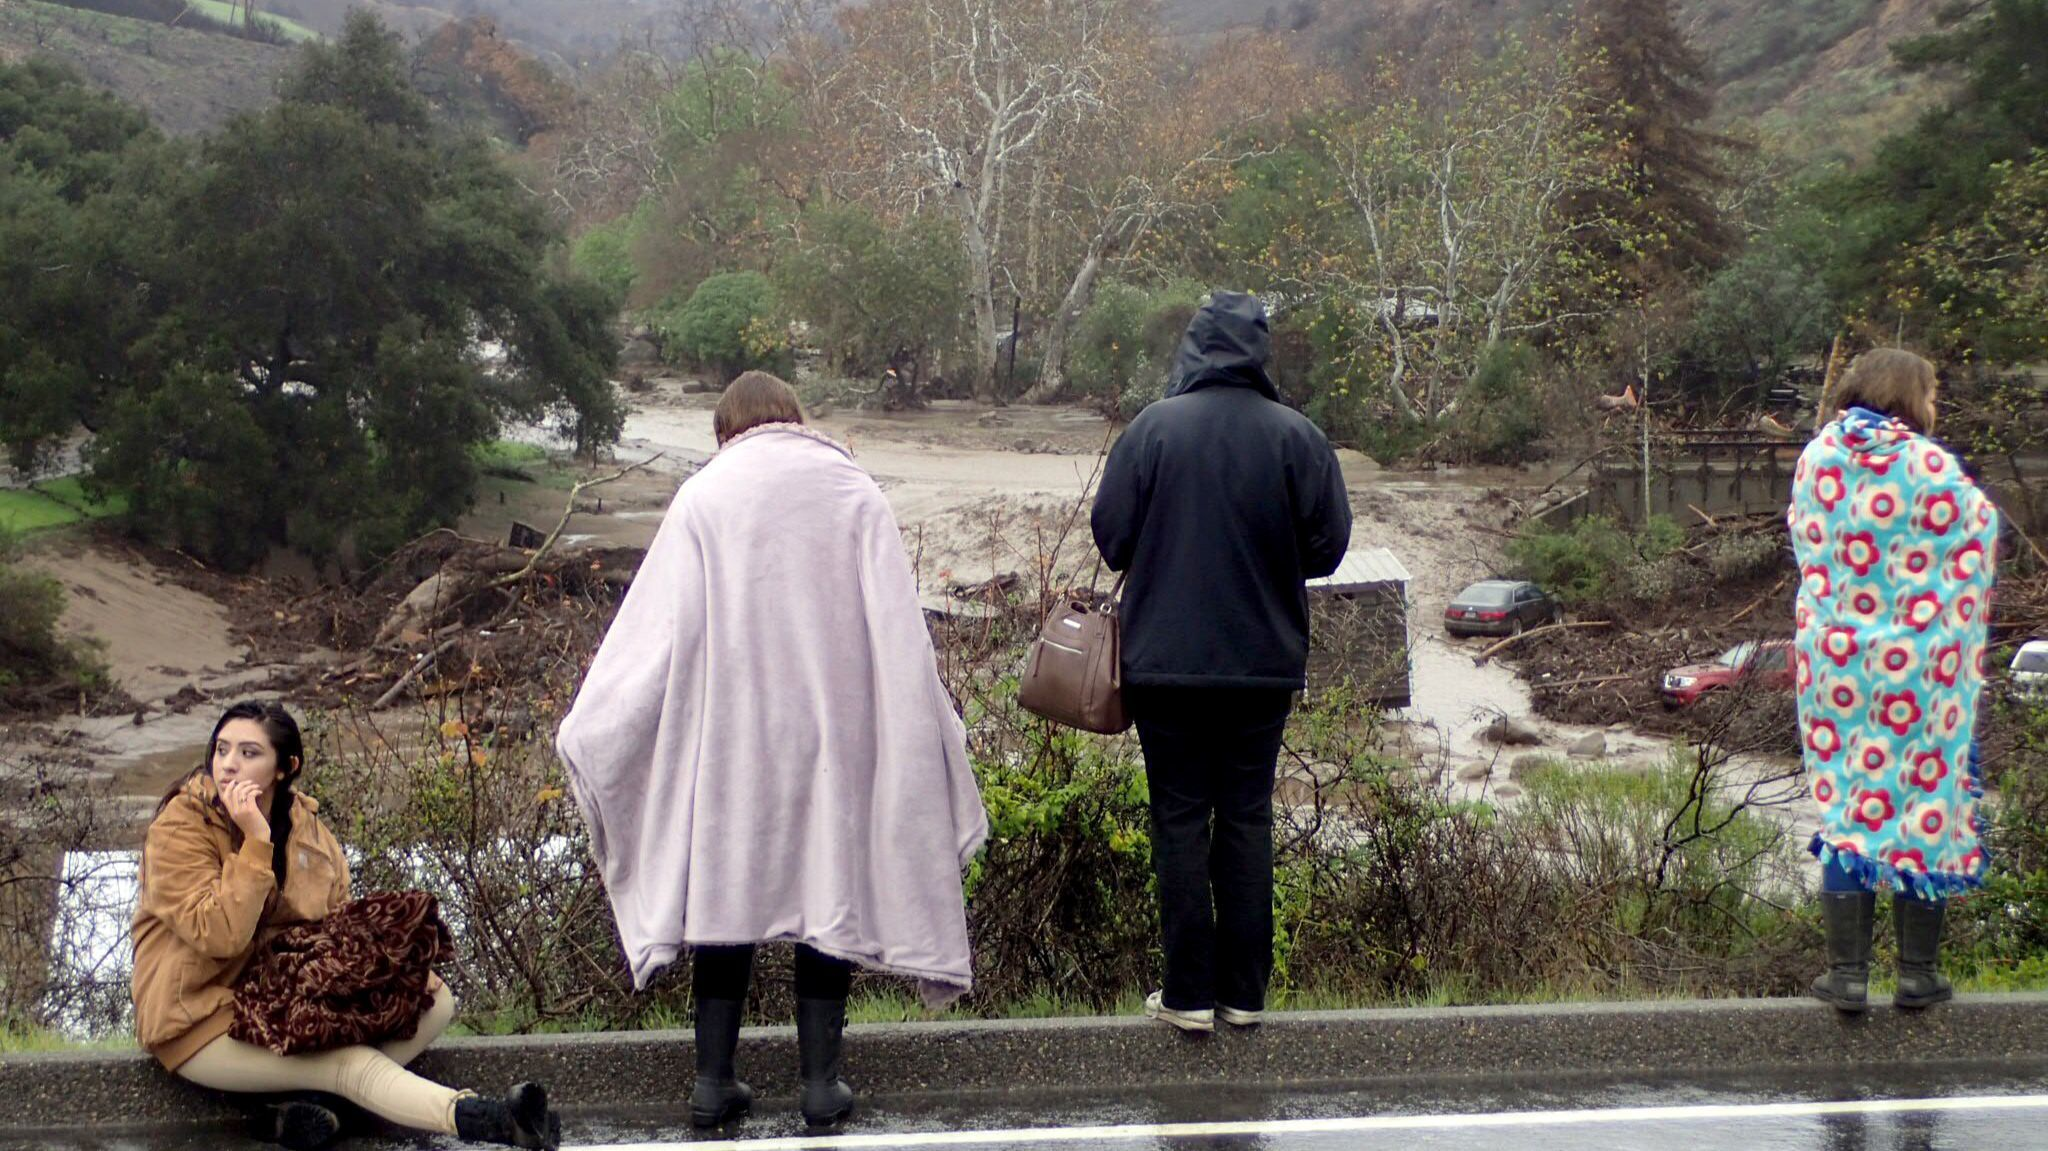 Flooding in the Sherpa fire burn area in Santa Barbara has caused several cabins in El Capitan Canyon to wash down the stream and forced evacuations.